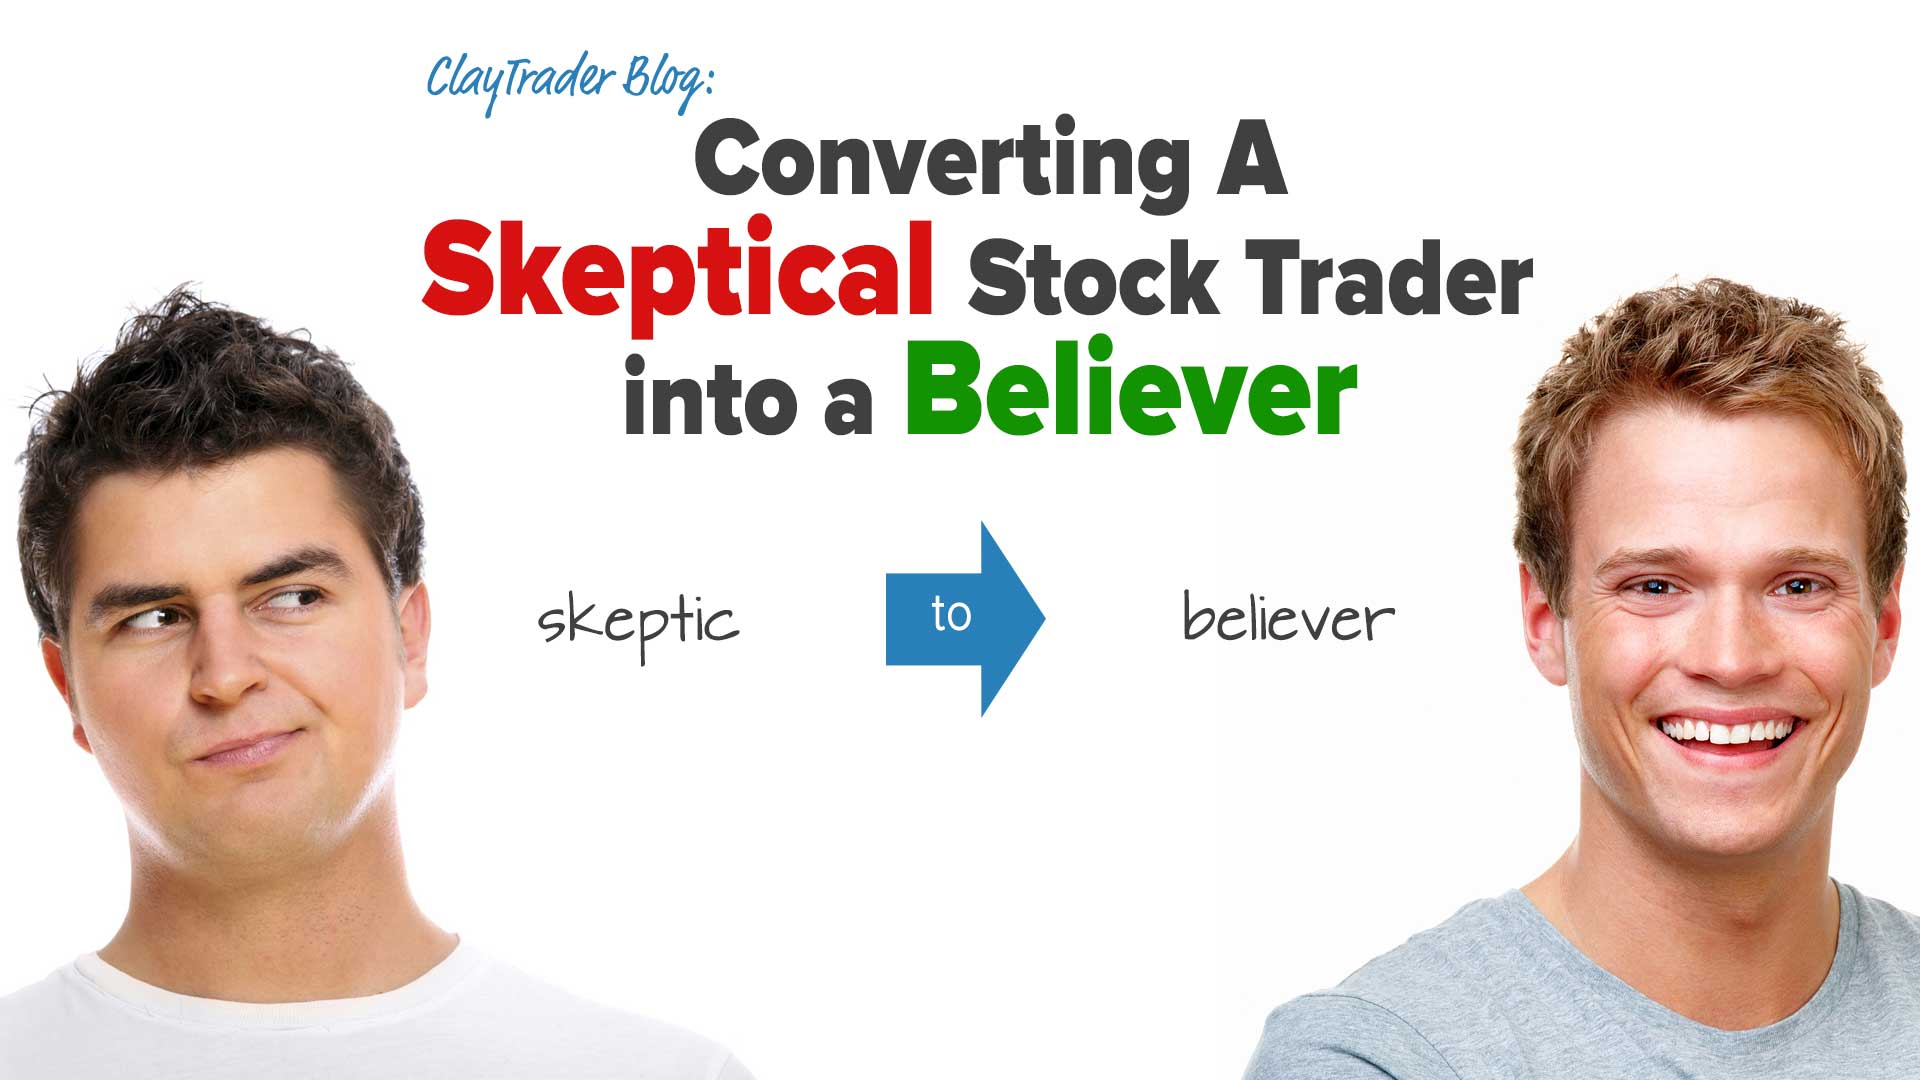 Skeptic To Believer